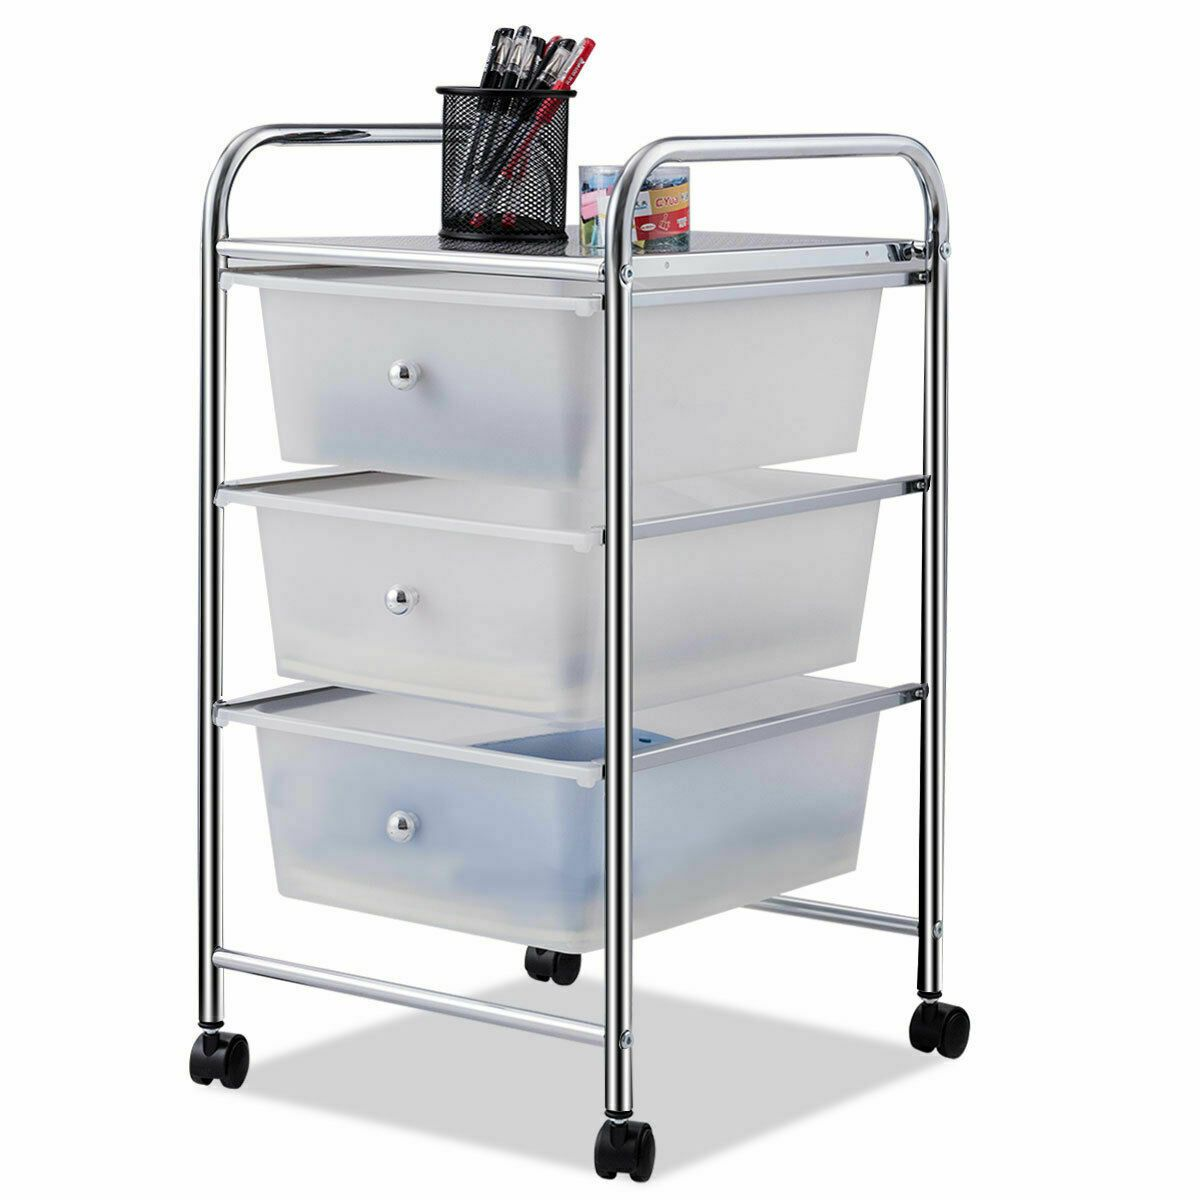 Details About Rolling Storage Cart And Organizer 3 Plastic Drawers Scrapbook Paper Office With Images Storage Bins Organization Rolling Storage Storage Cart